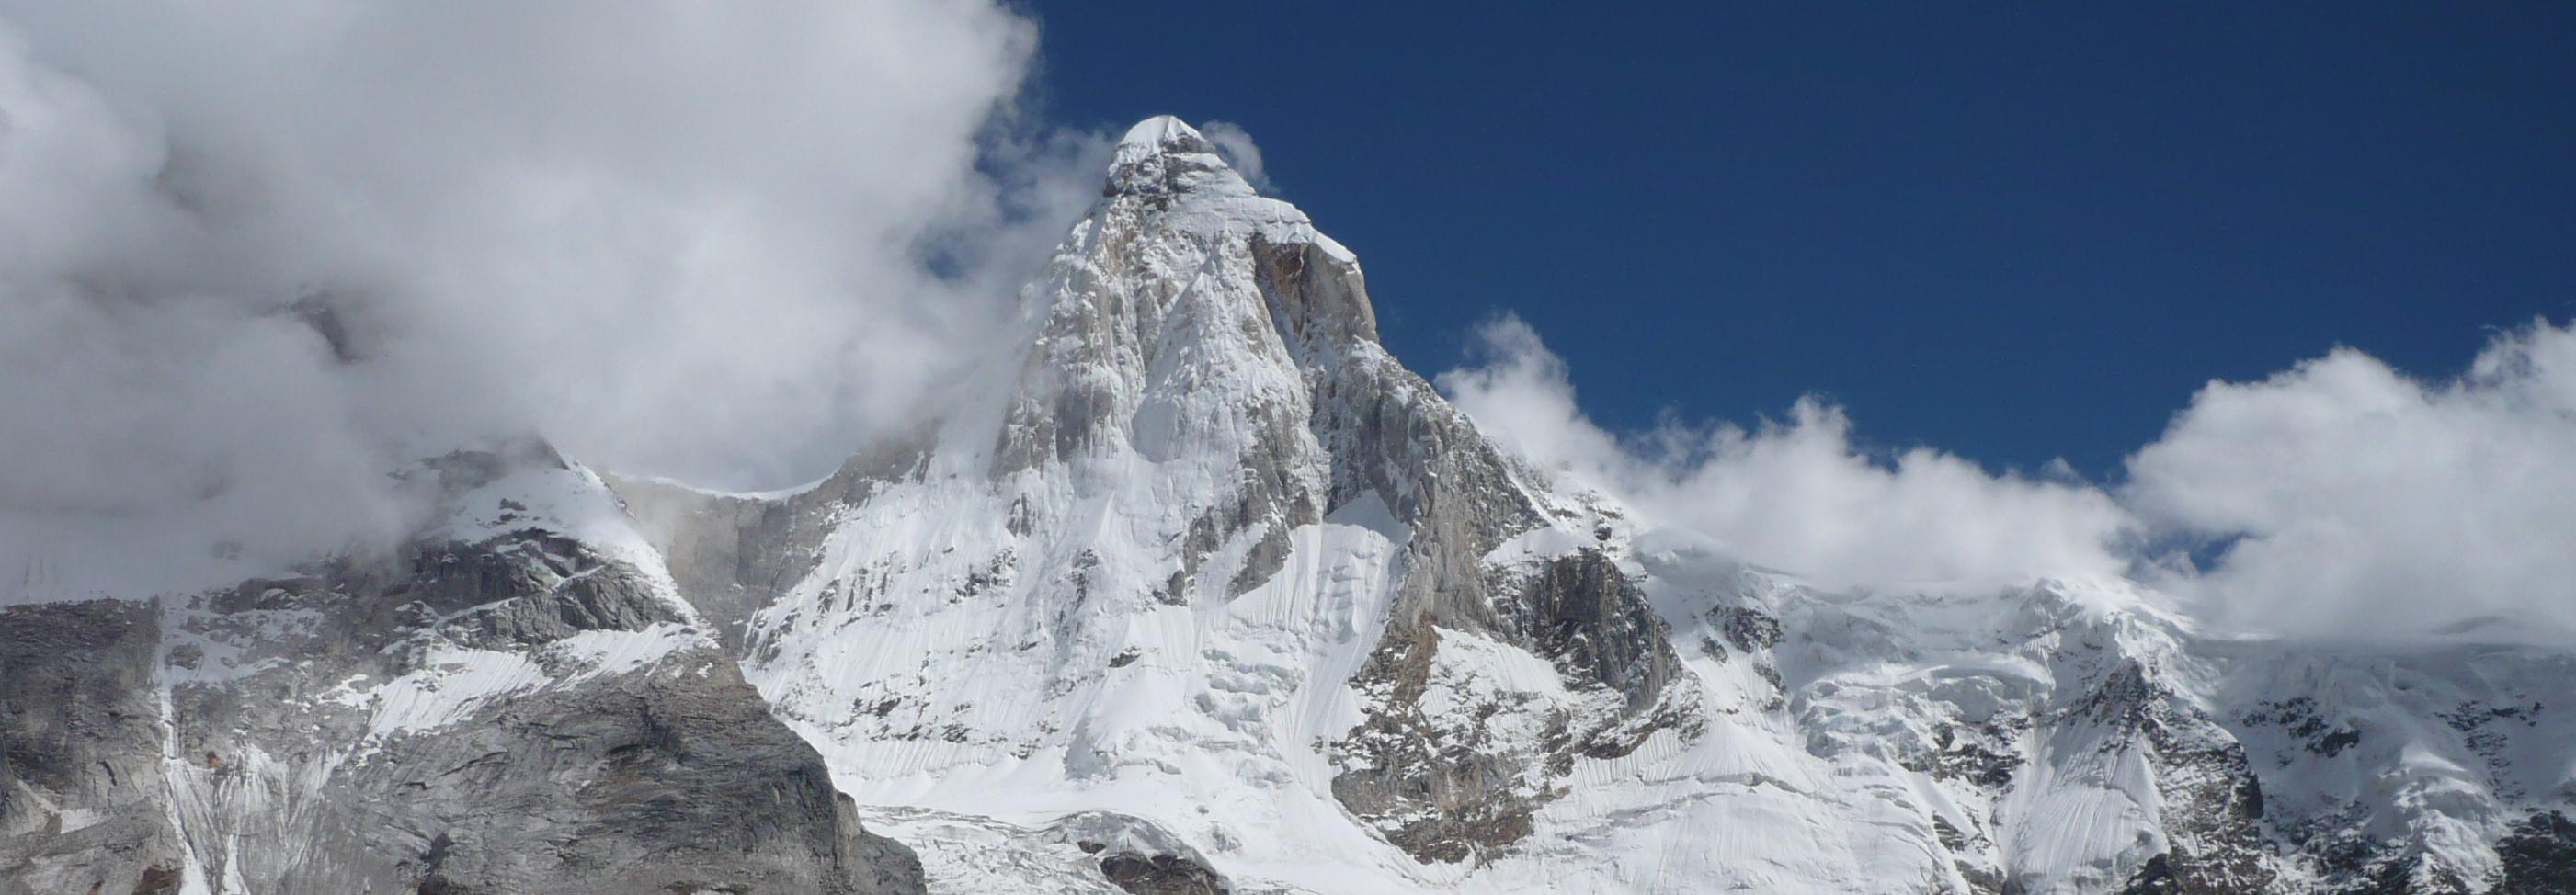 Mt Thalay Sagar Expeditions in India